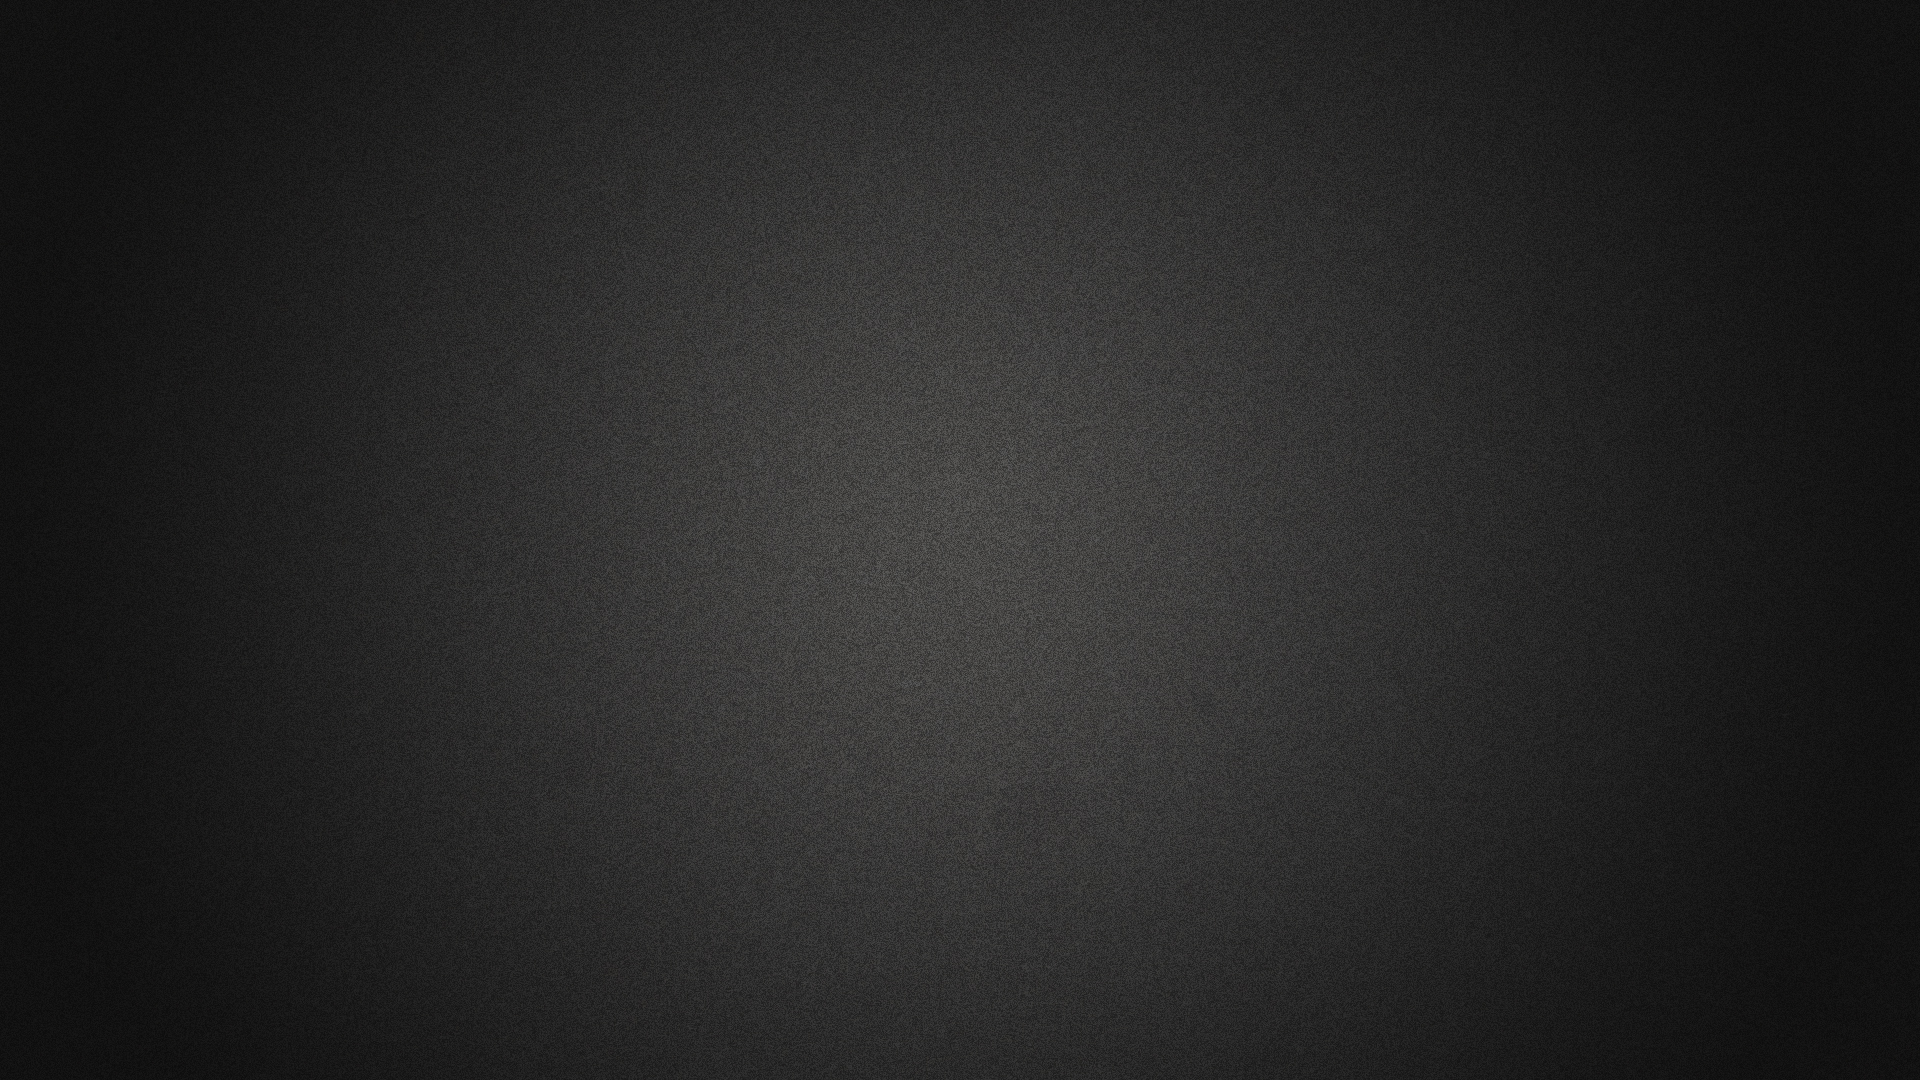 matte black wallpaper 29553